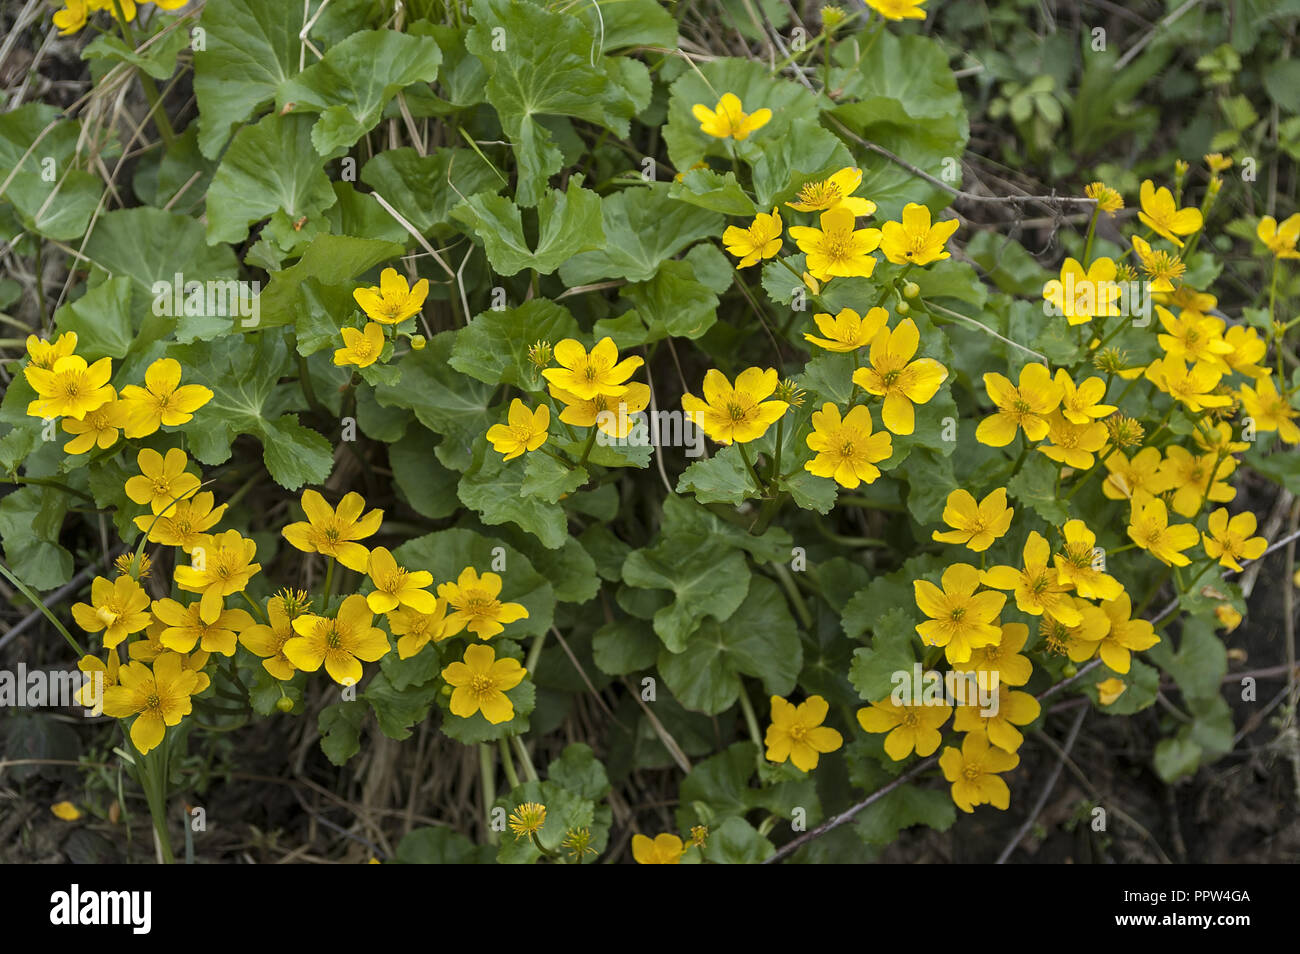 Caltha palustris, known as marsh-marigold and kingcup. Stock Photo